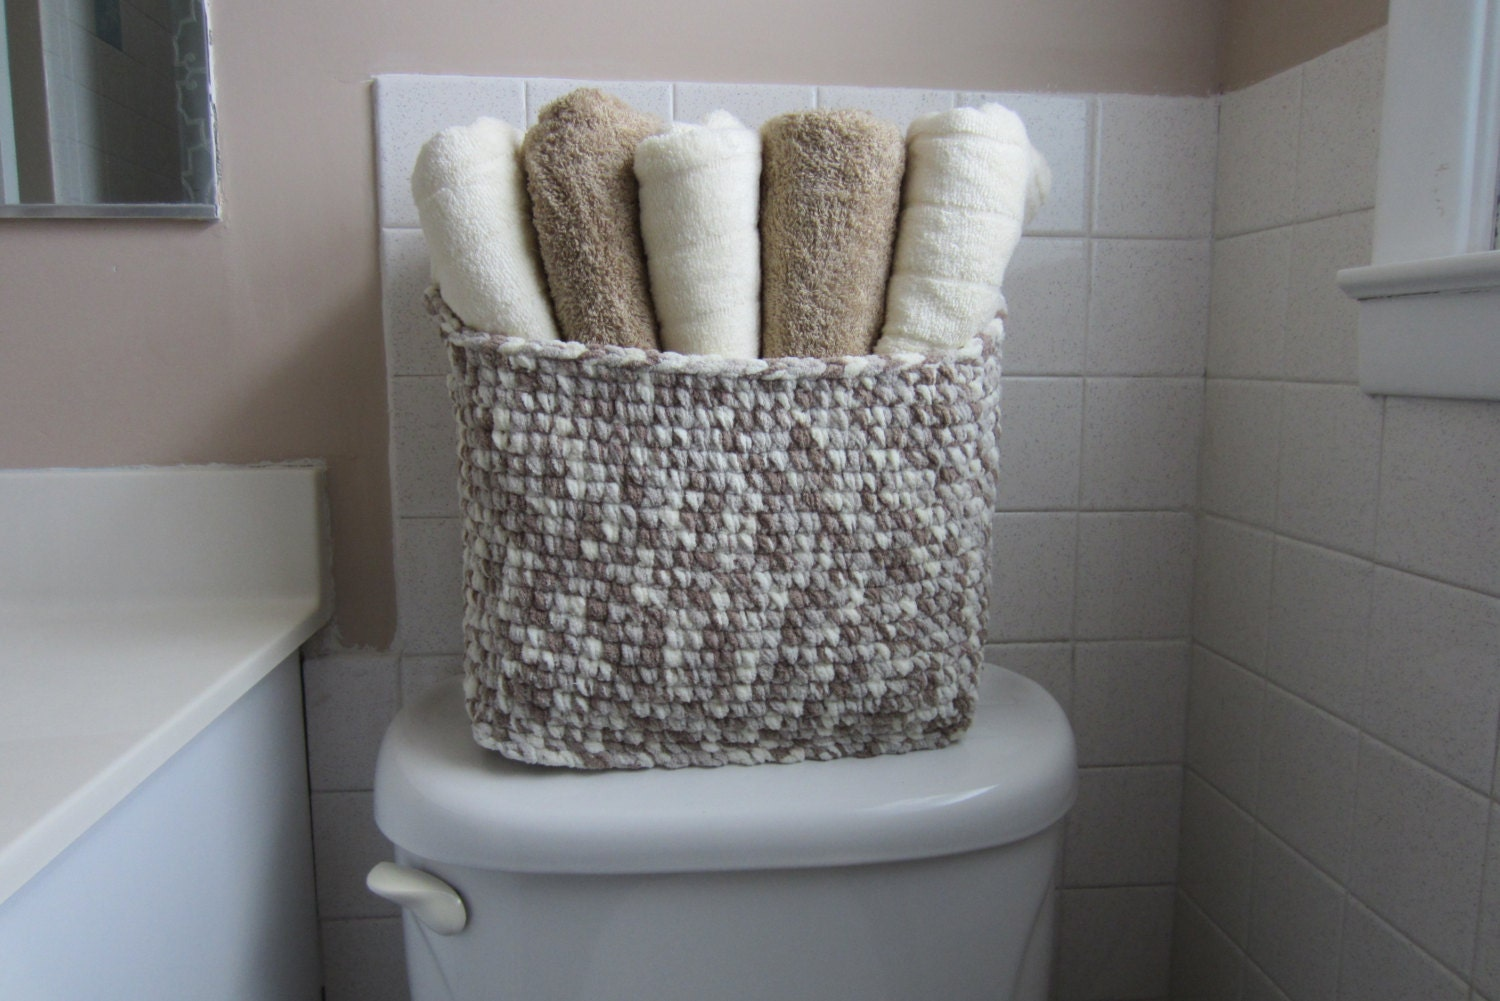 towel storage basket large bin for bathroom toiletries. Black Bedroom Furniture Sets. Home Design Ideas